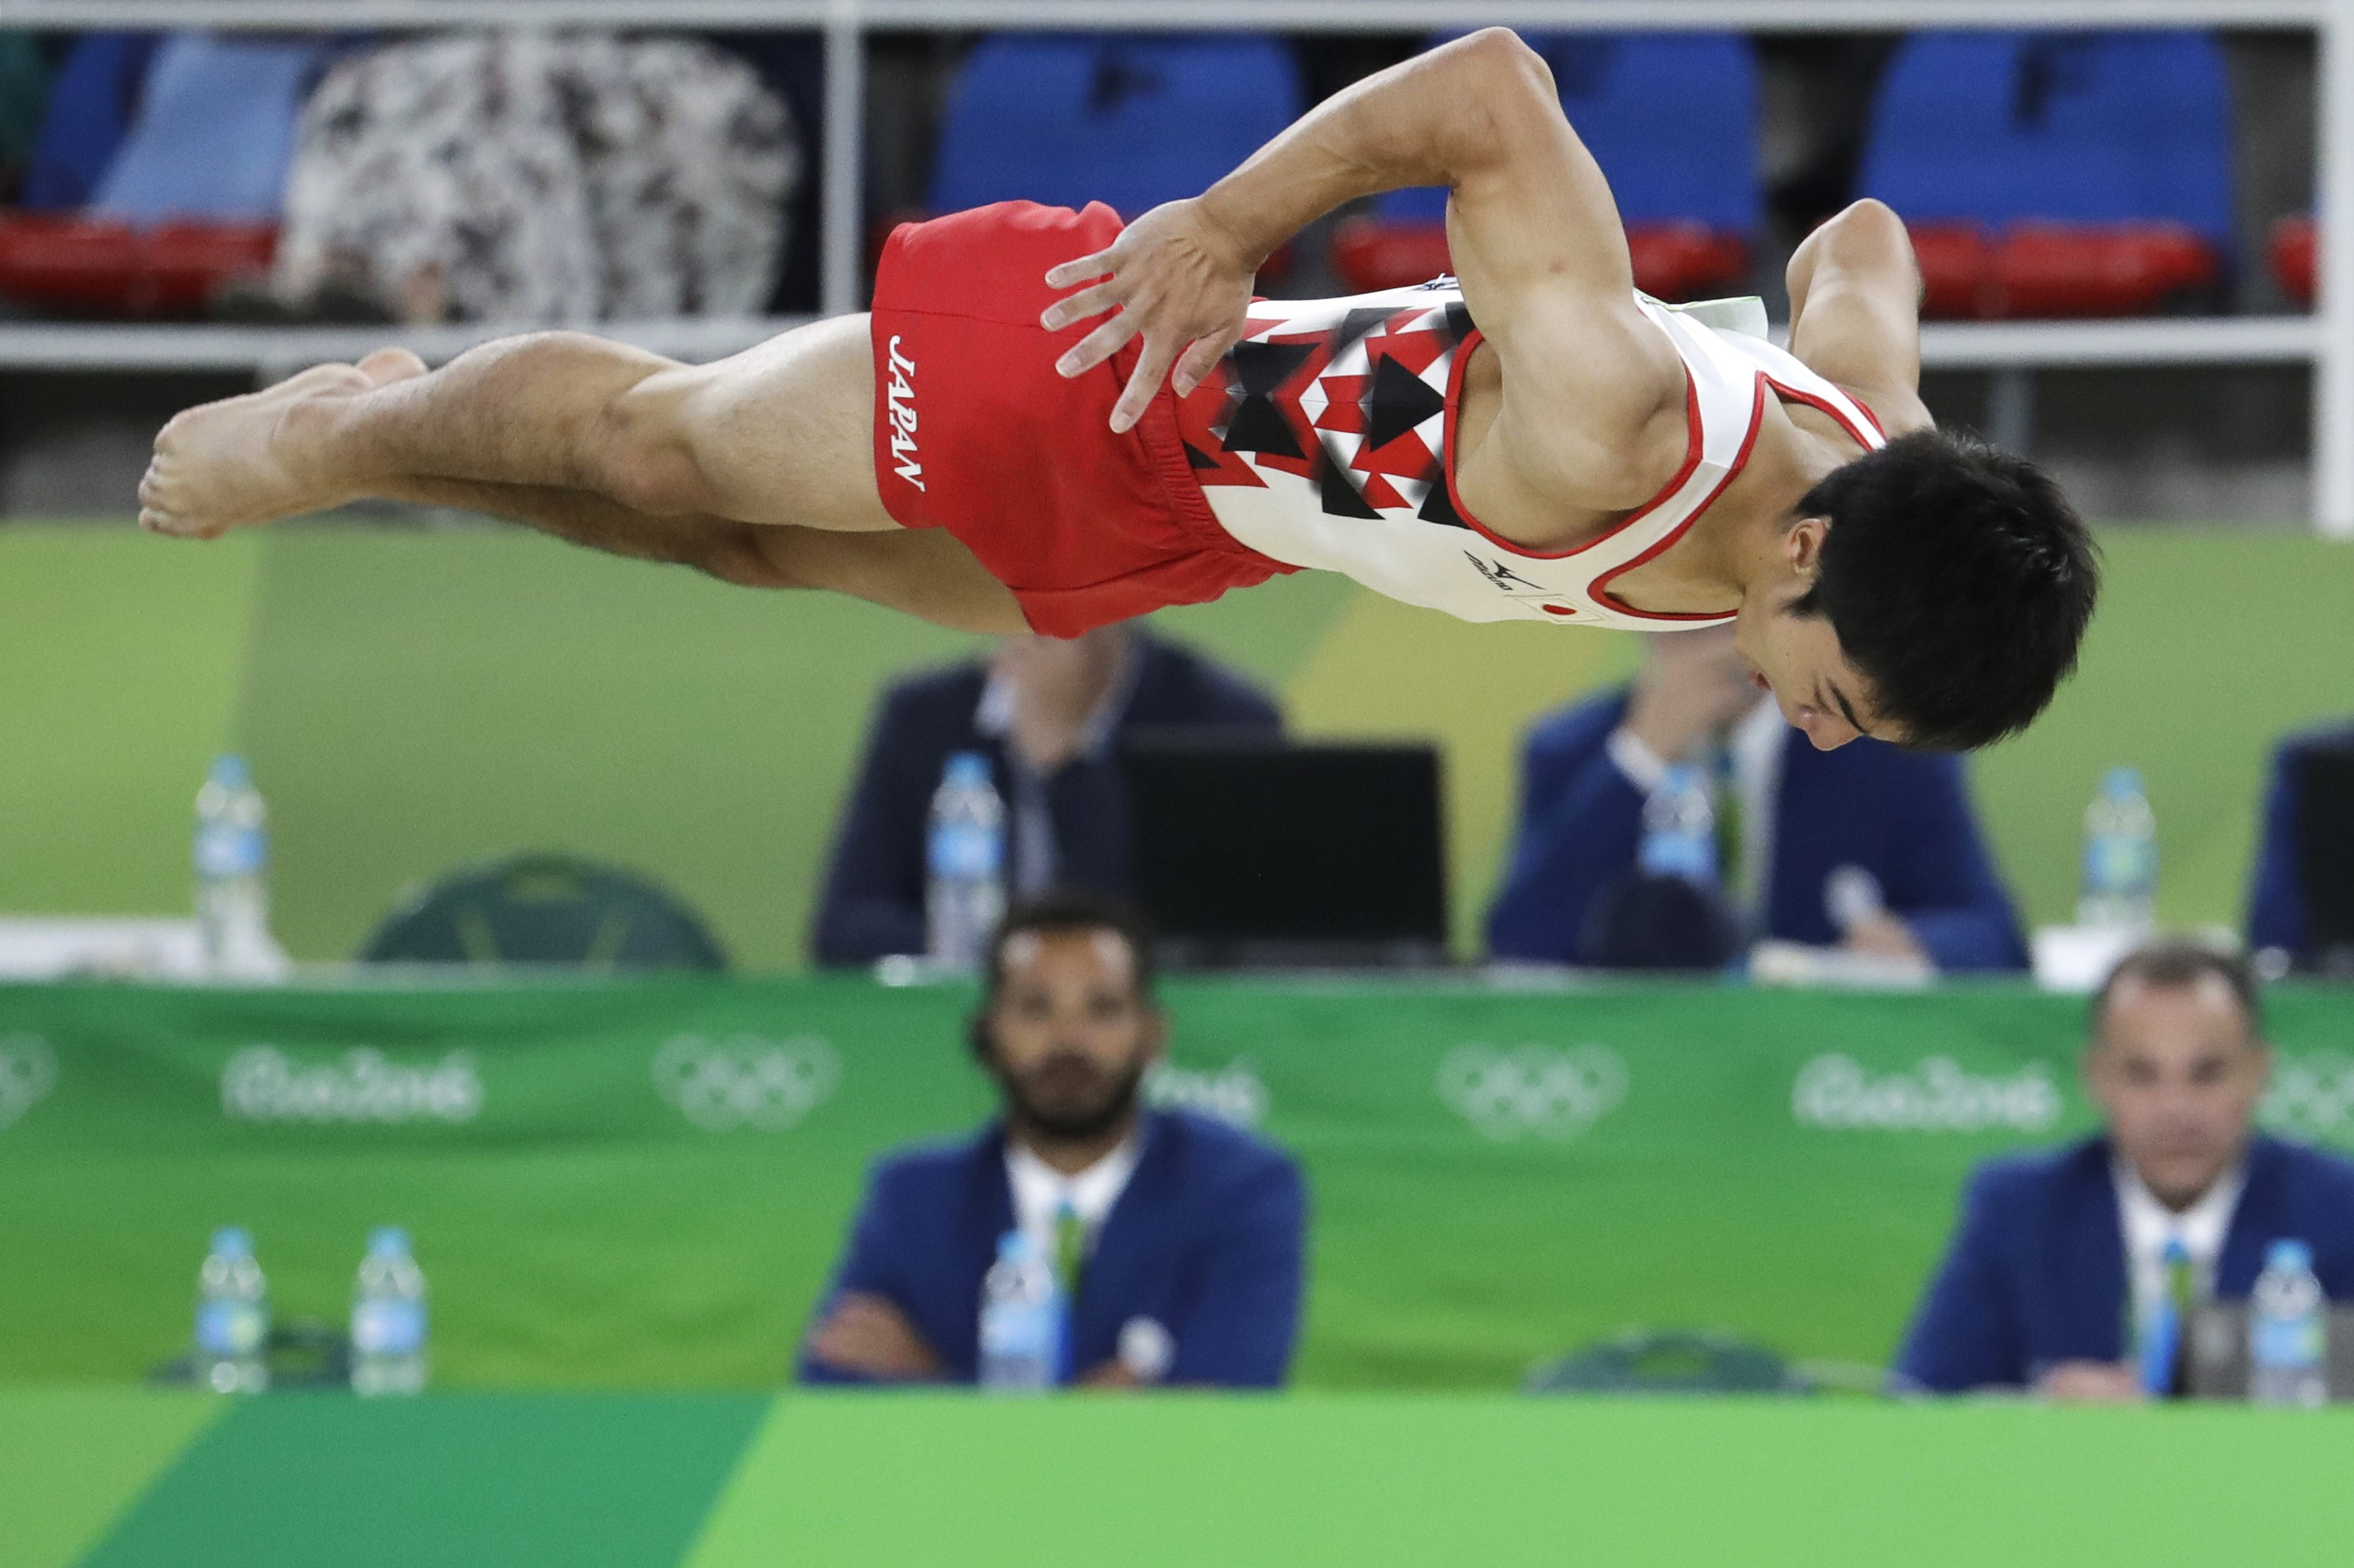 Japan's Kenzo Shirai performs on the floor during the artistic gymnastics men's qualification at the 2016 Summer Olympics in Rio de Janeiro, Brazil, Saturday, Aug. 6, 2016. (AP Photo/Dmitri Lovetsky)